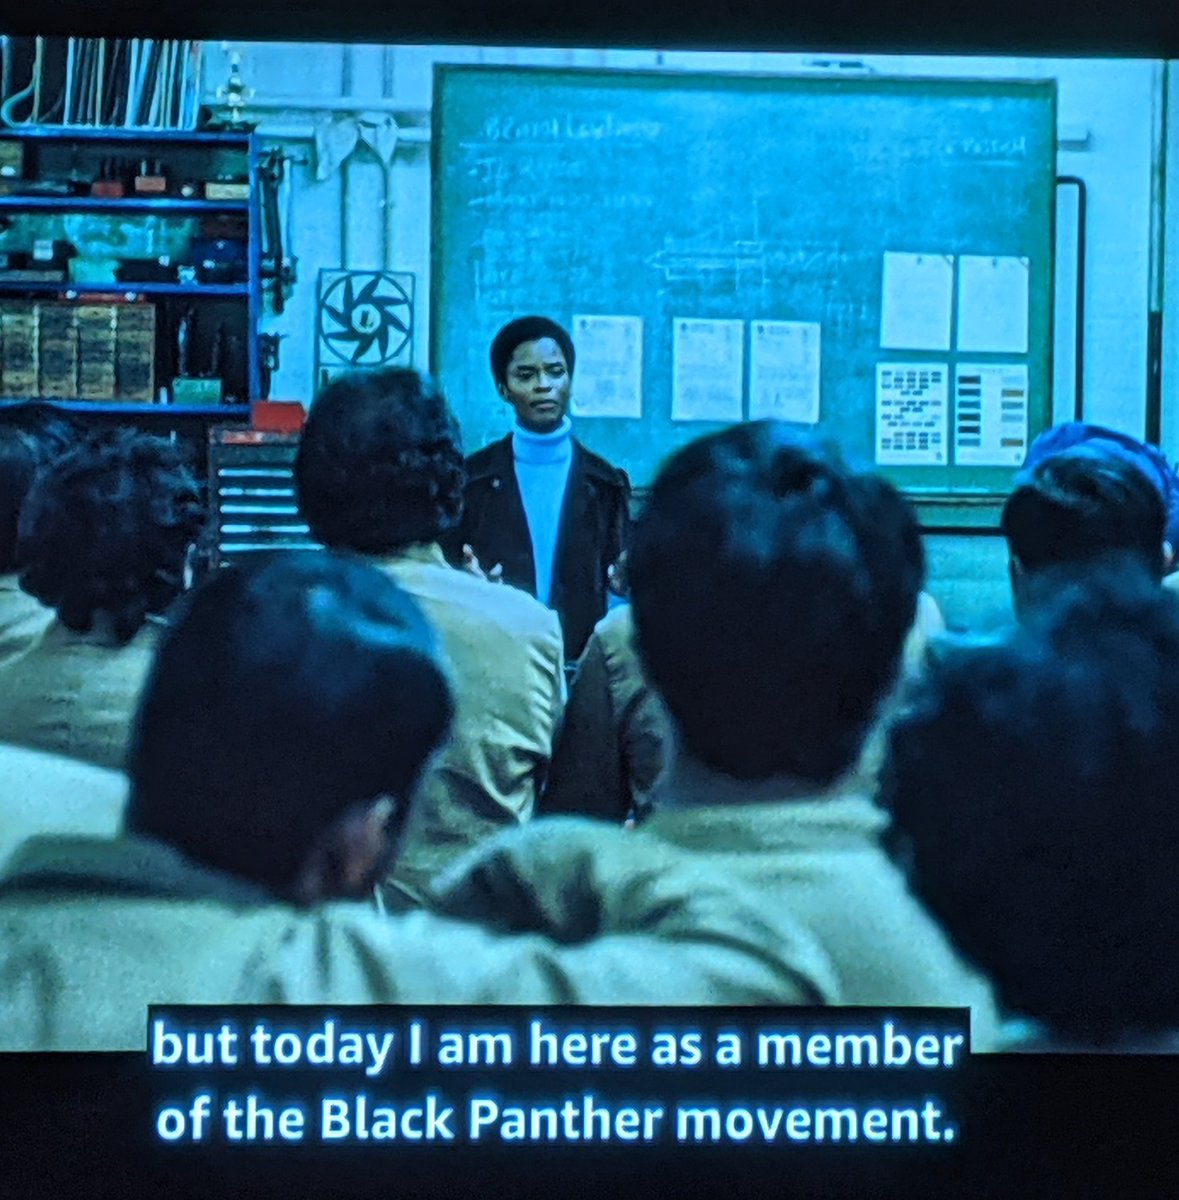 Well, Steve McQueen has made Letitia Wright *a* Black Panther. So close. #mangrove #smallaxe https://t.co/m7ZbdKf7ND